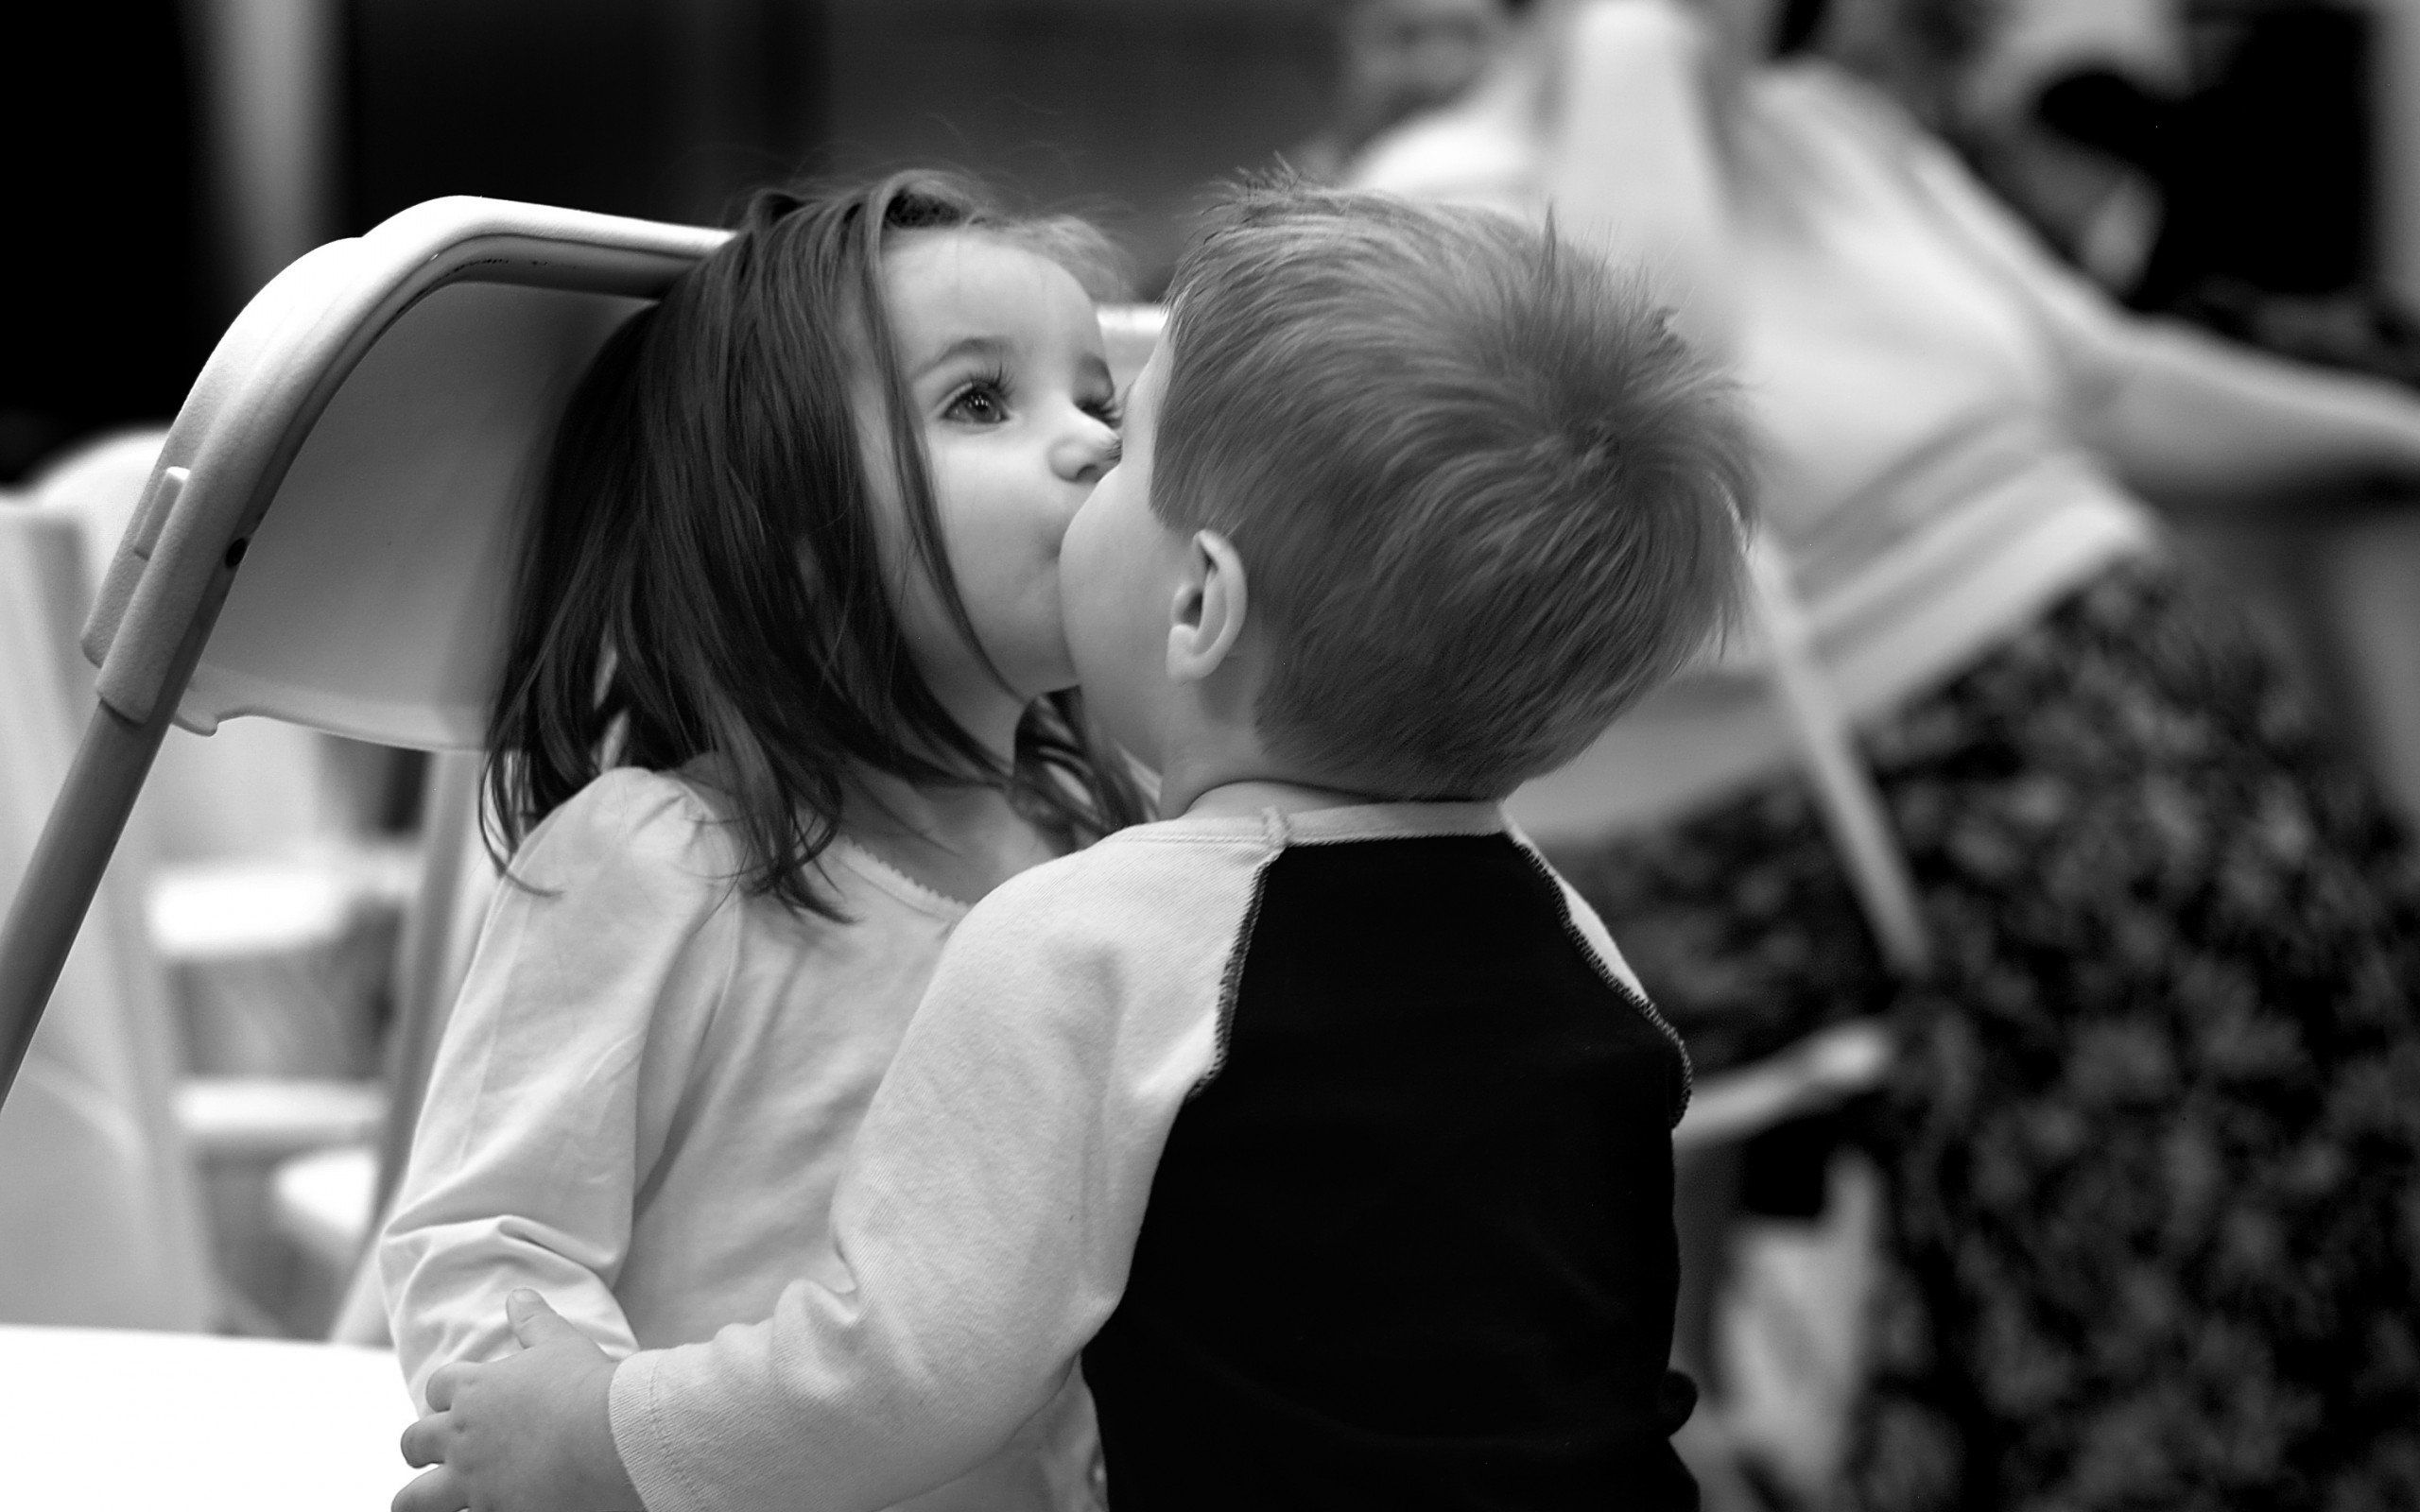 Cute Baby Girl And Boy Kissing Hd Wallpapers Cute Baby Couple Children Photography Kids Photos